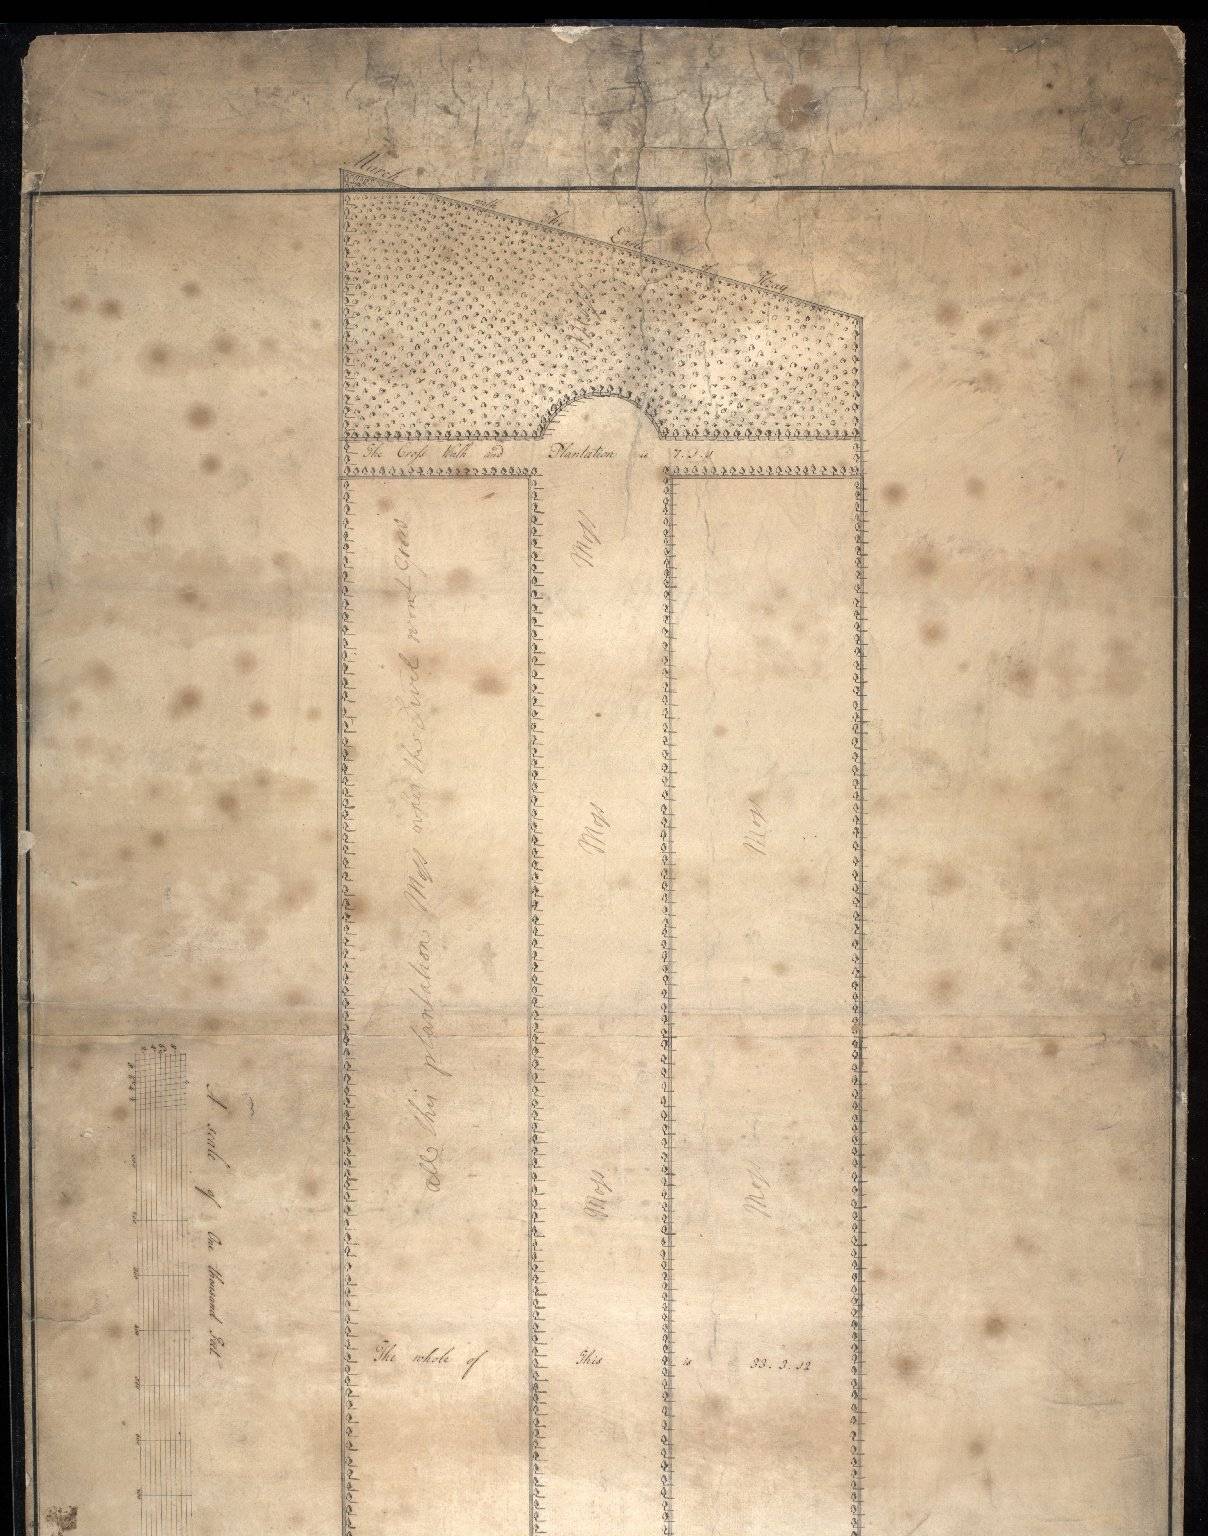 Plan of part of The Graing [i.e. Grange], the seat of the Hon. Major Thomas Cockran Esq. [1 of 2]